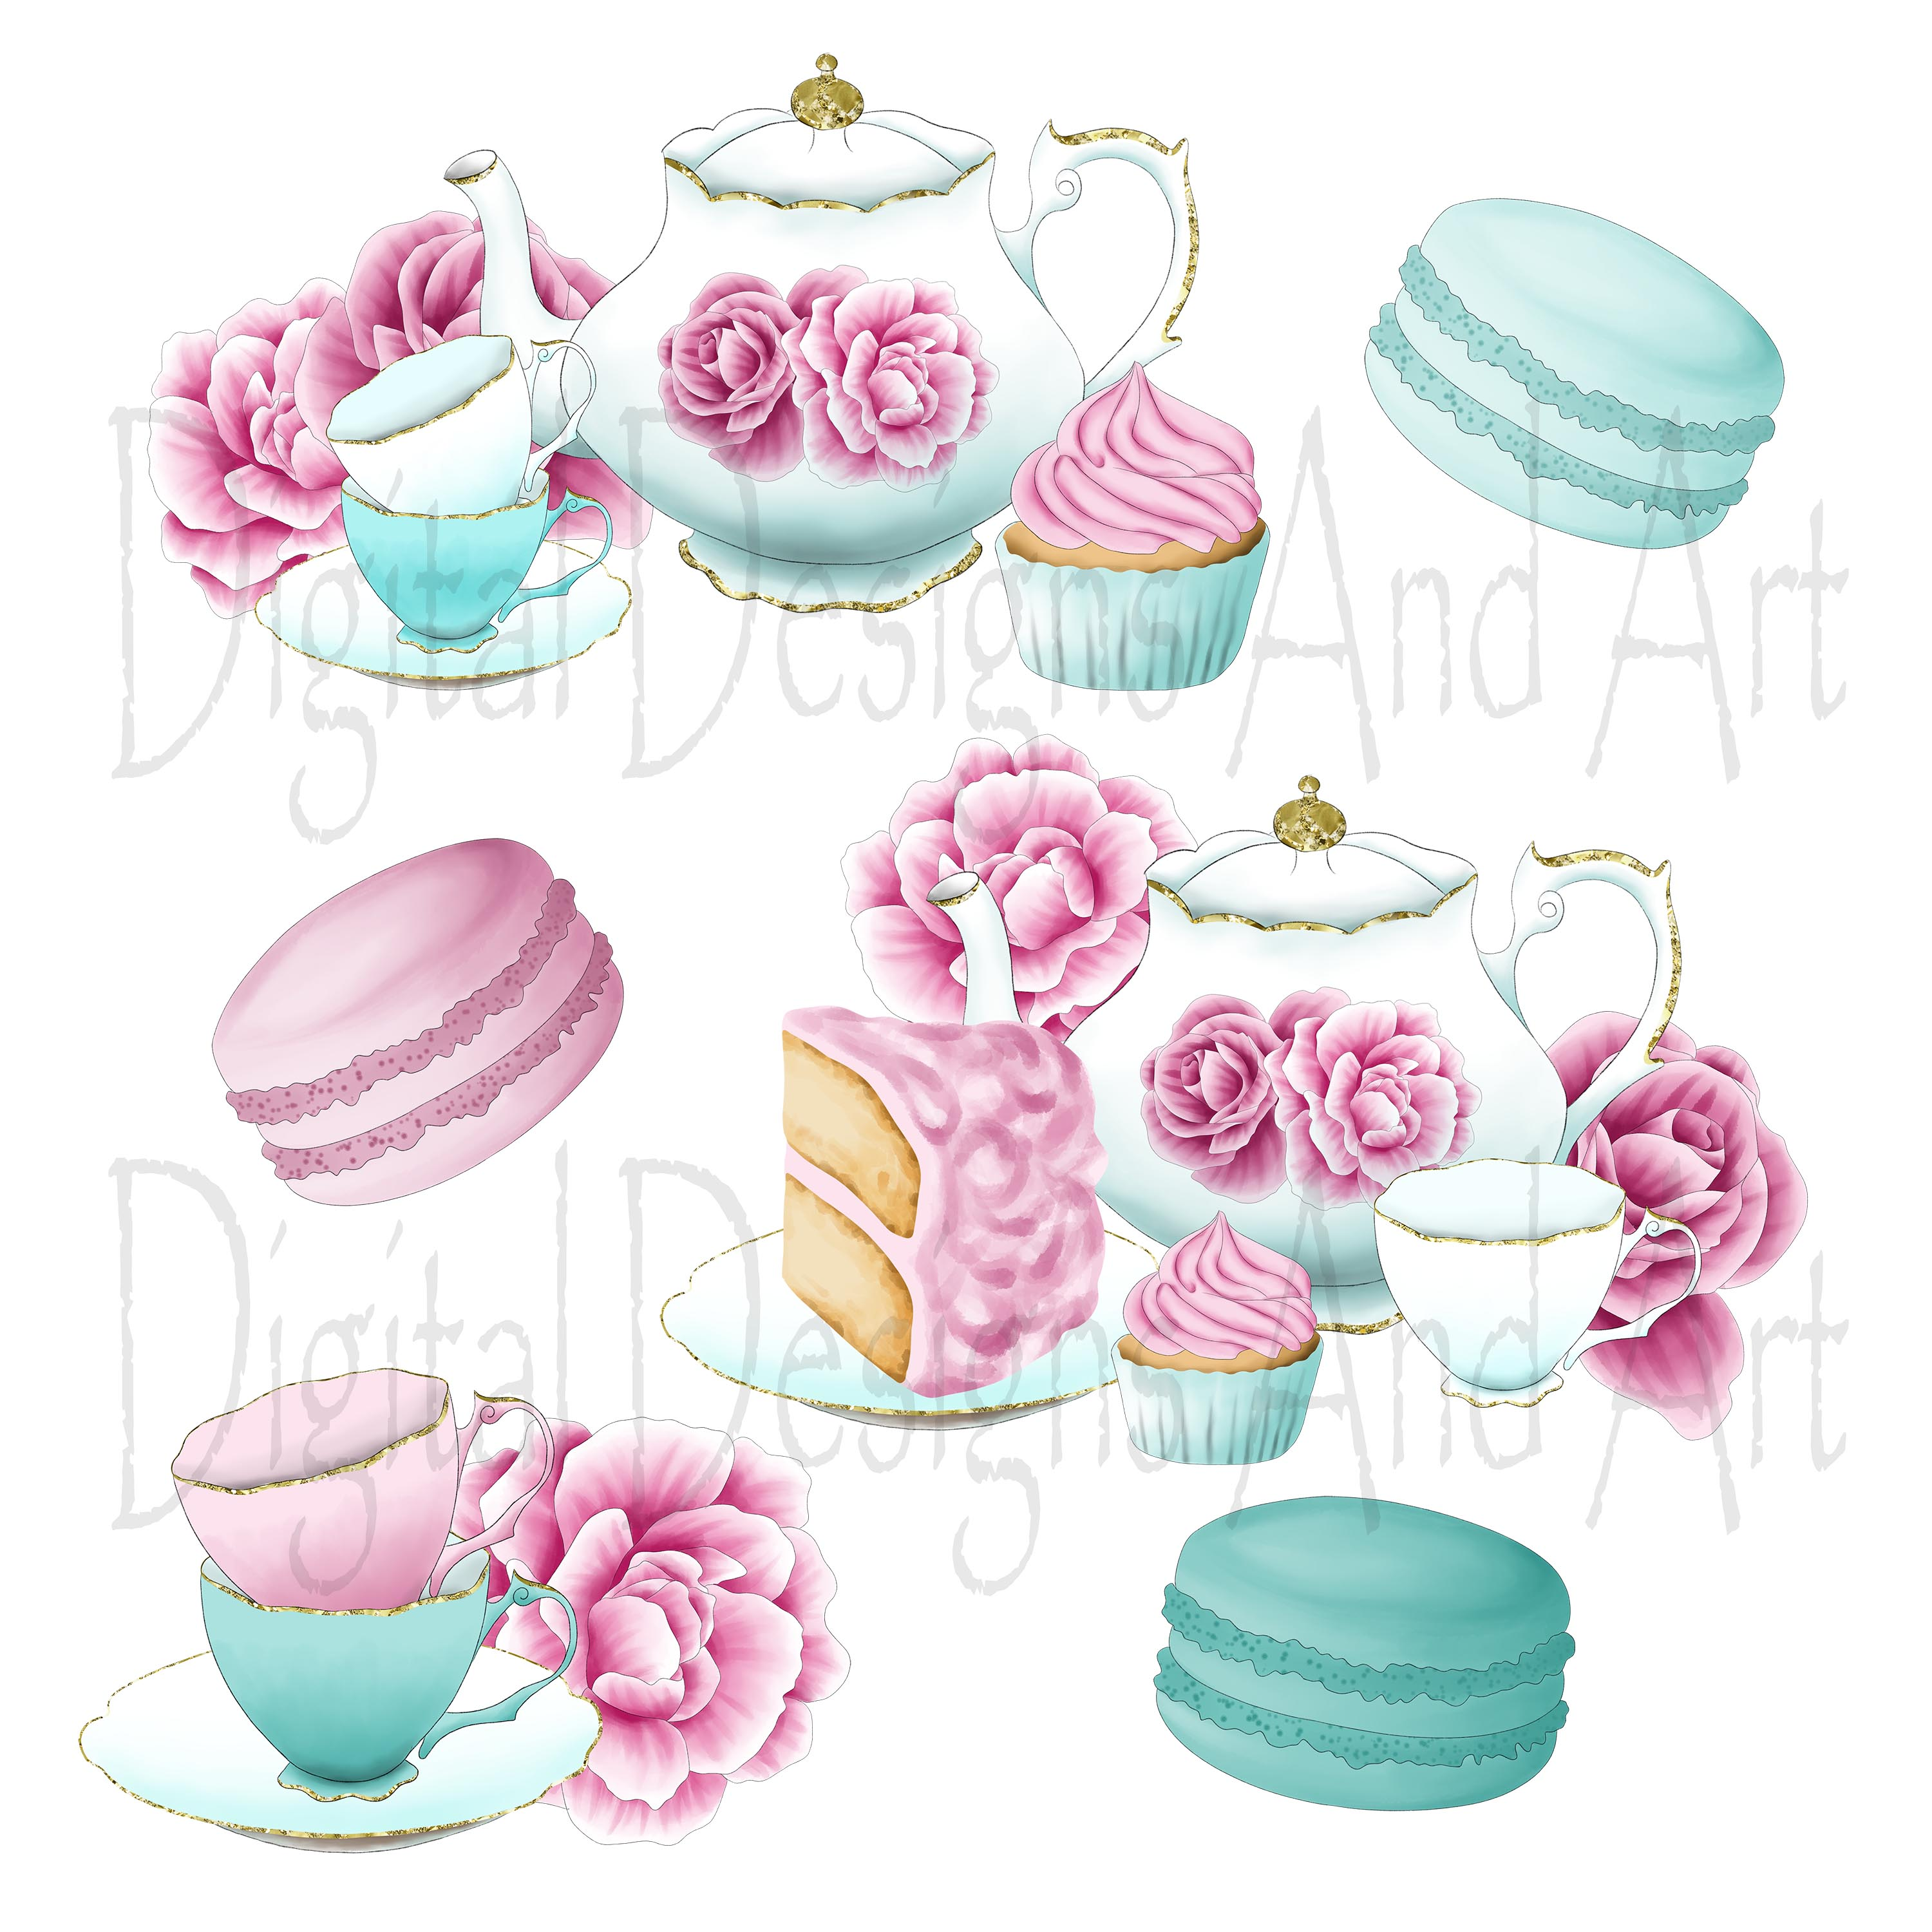 Afternoon tea clipart example image 3